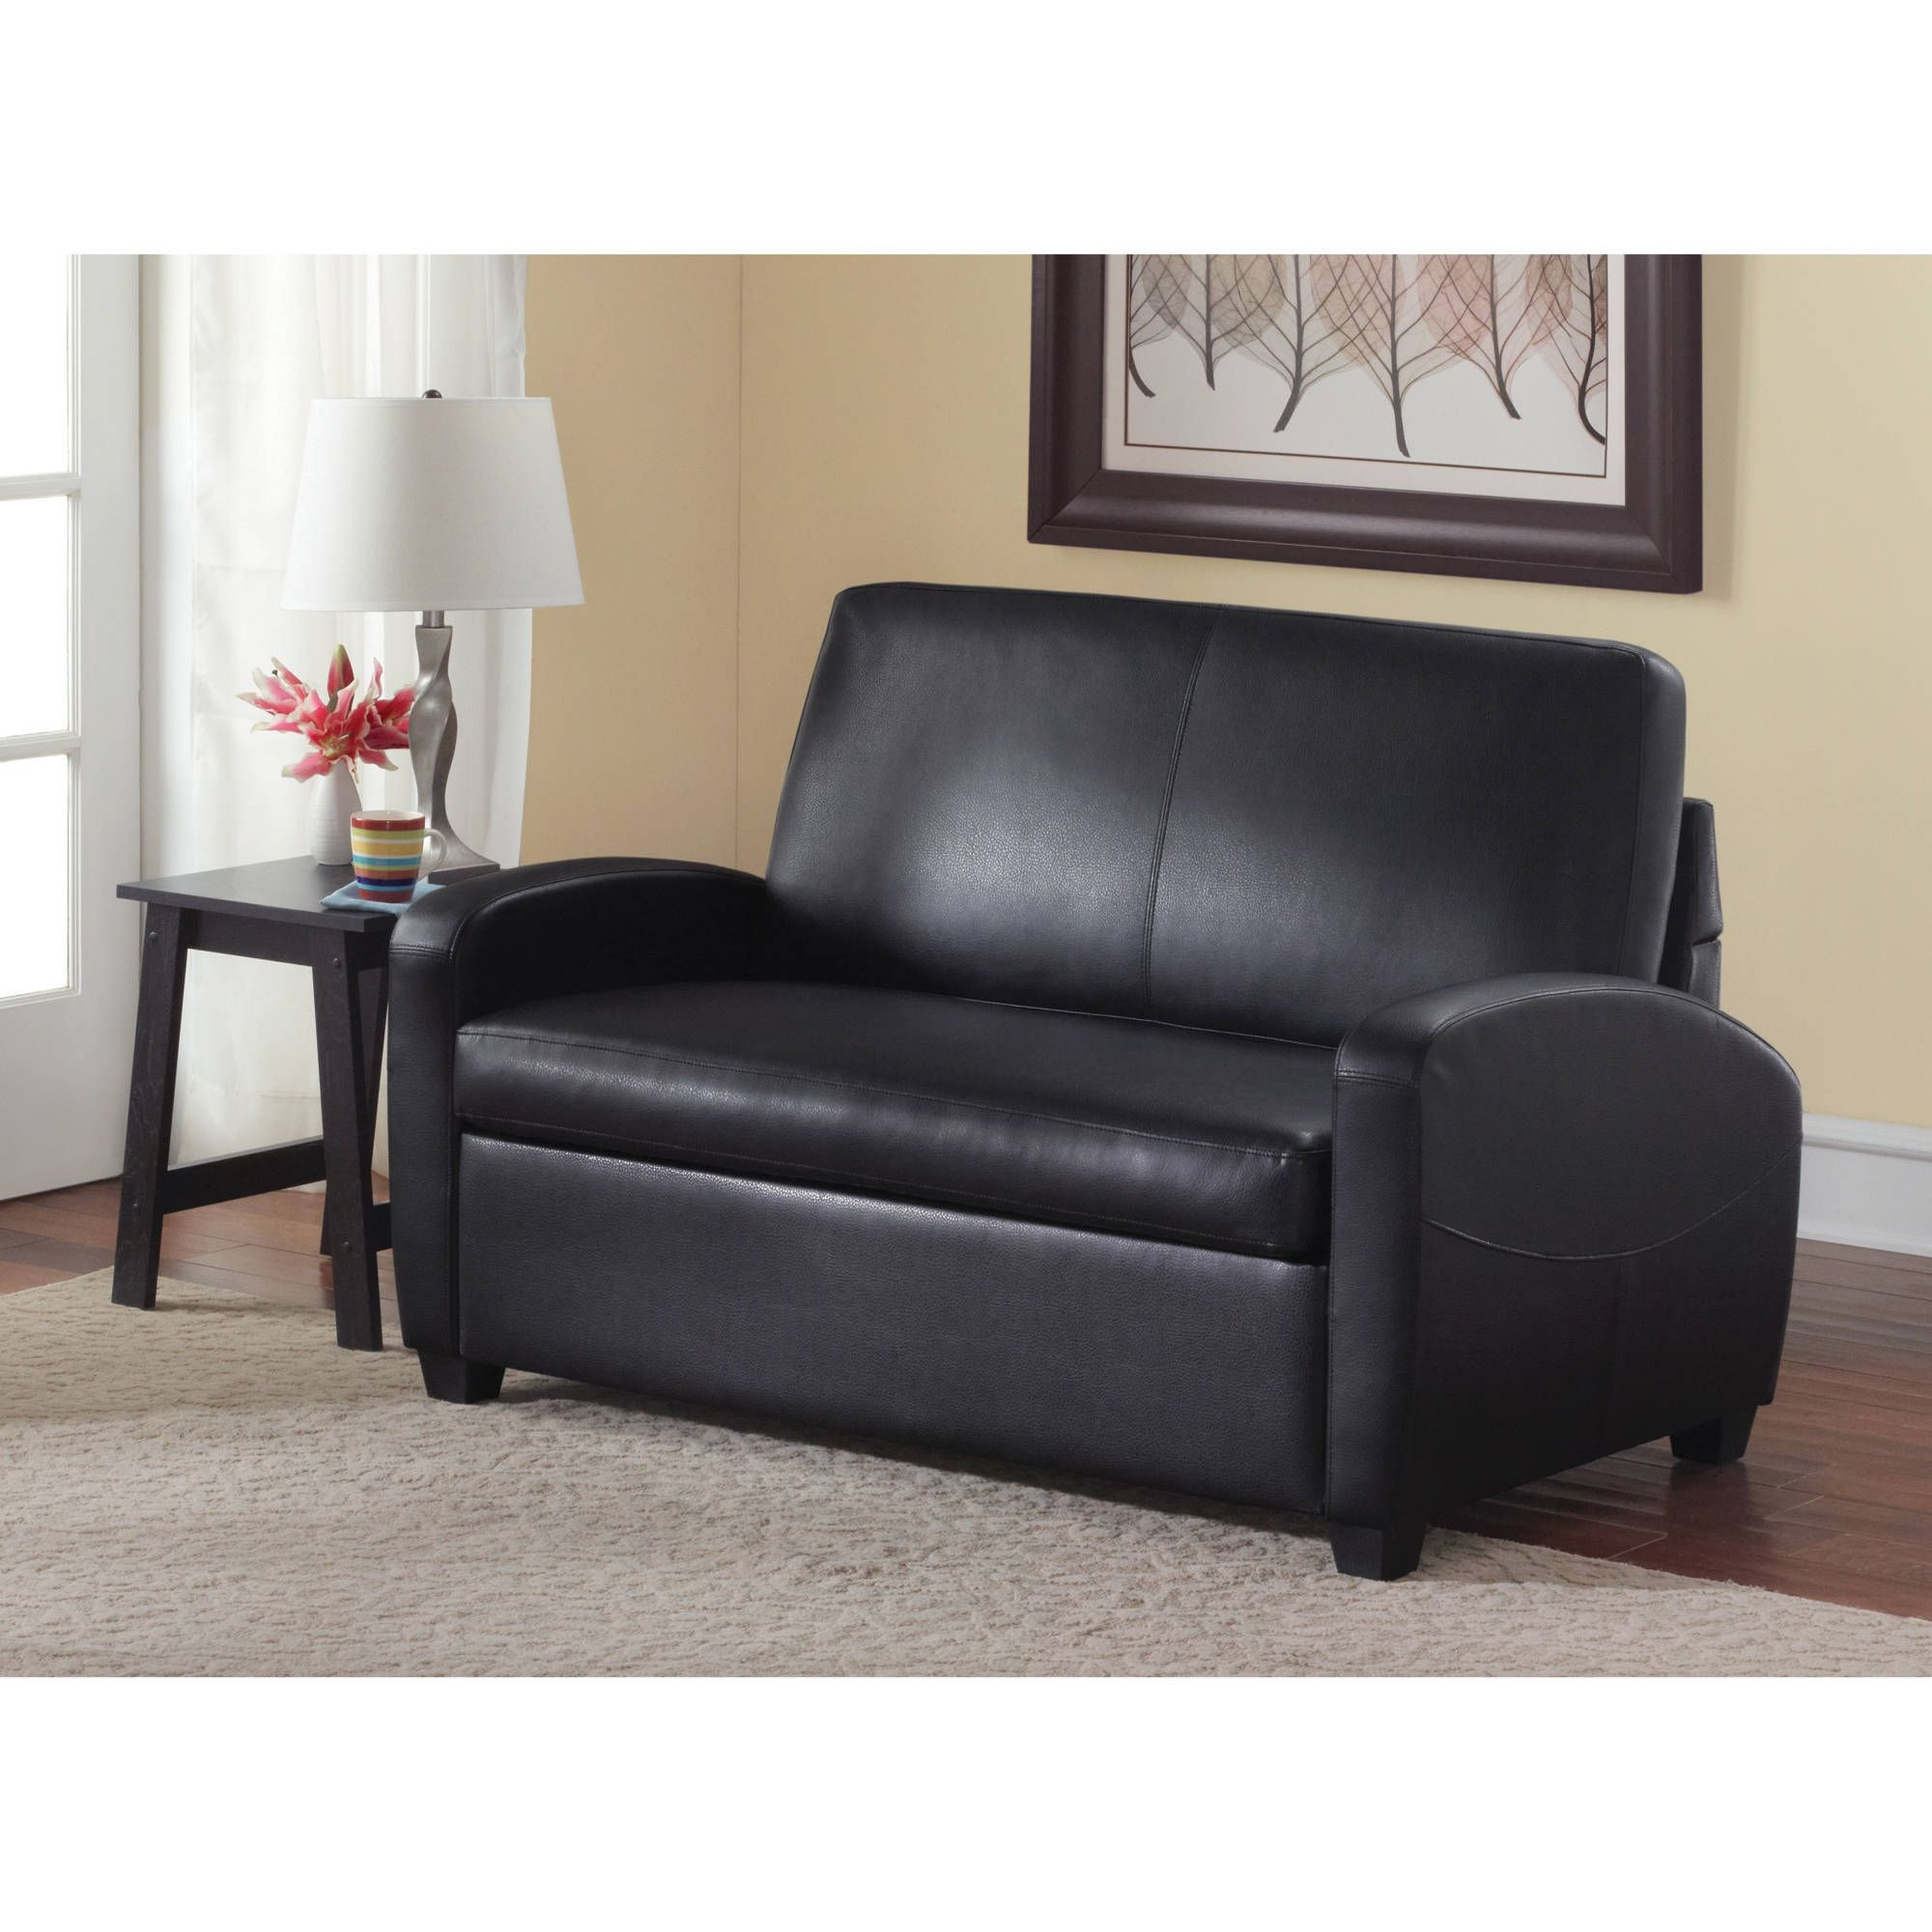 Kmart Twin Size Sofa Sleeper